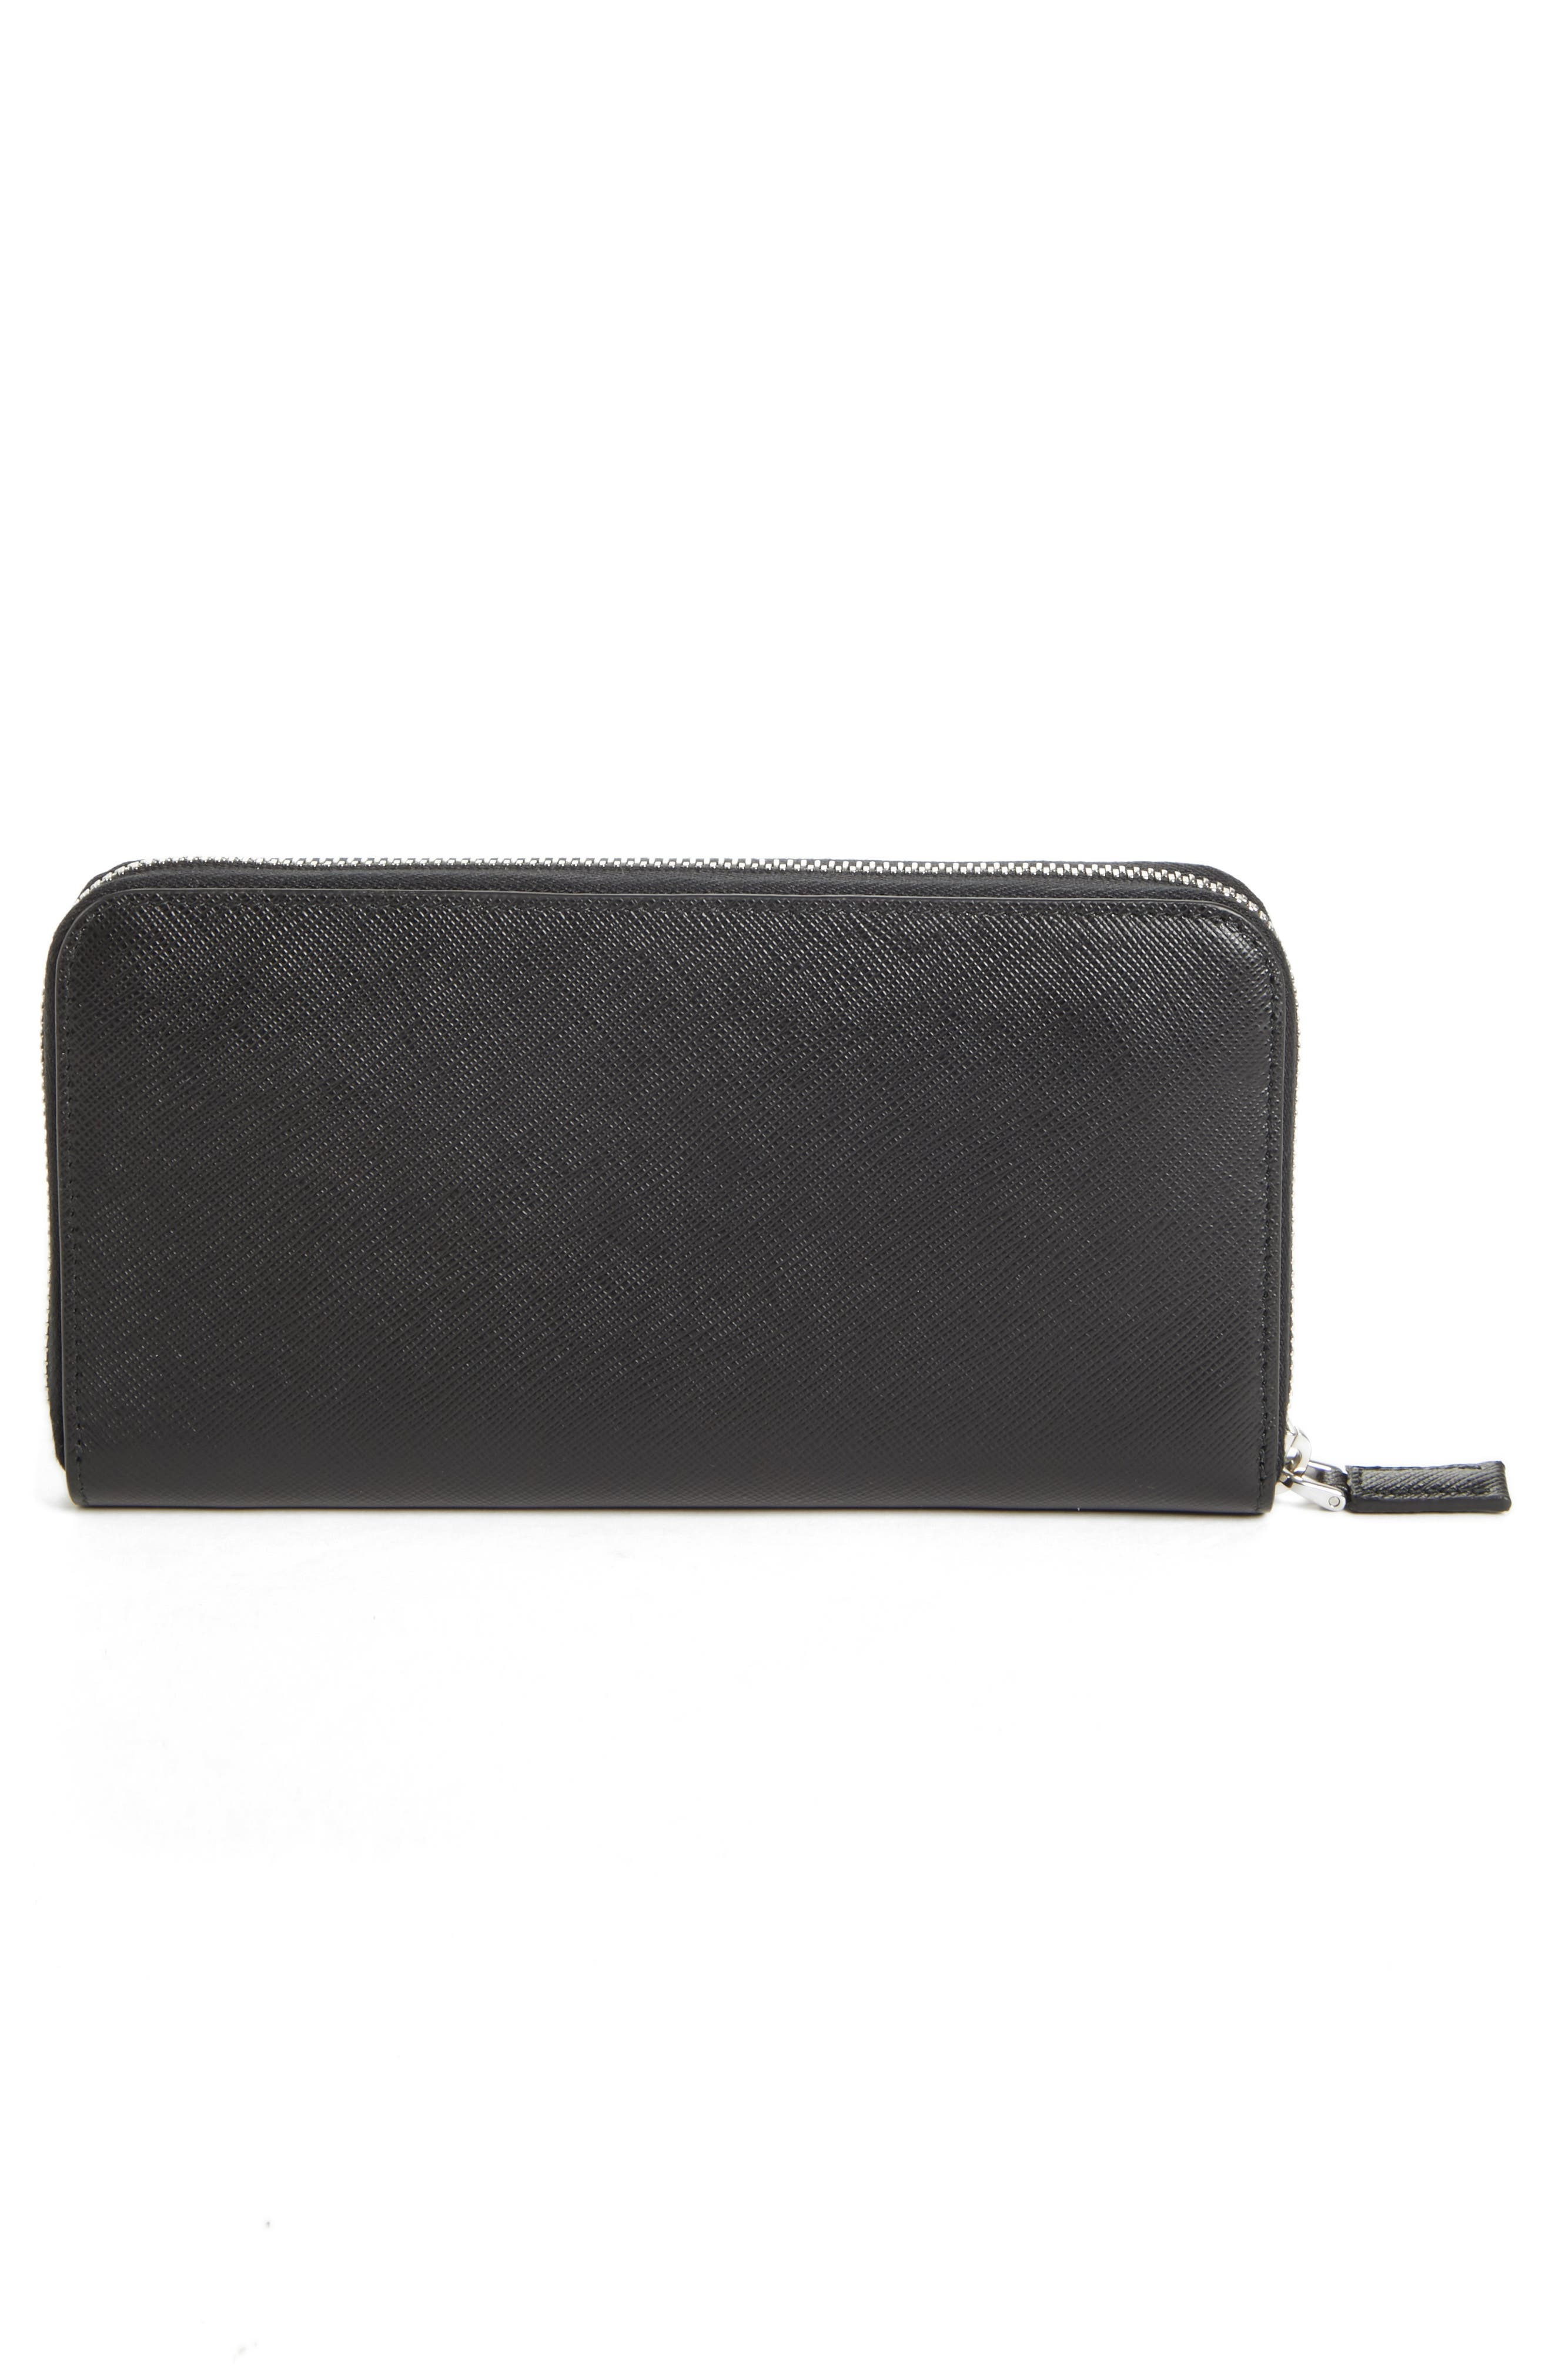 Long Zip Around Saffiano Leather Wallet,                             Alternate thumbnail 4, color,                             BLACK